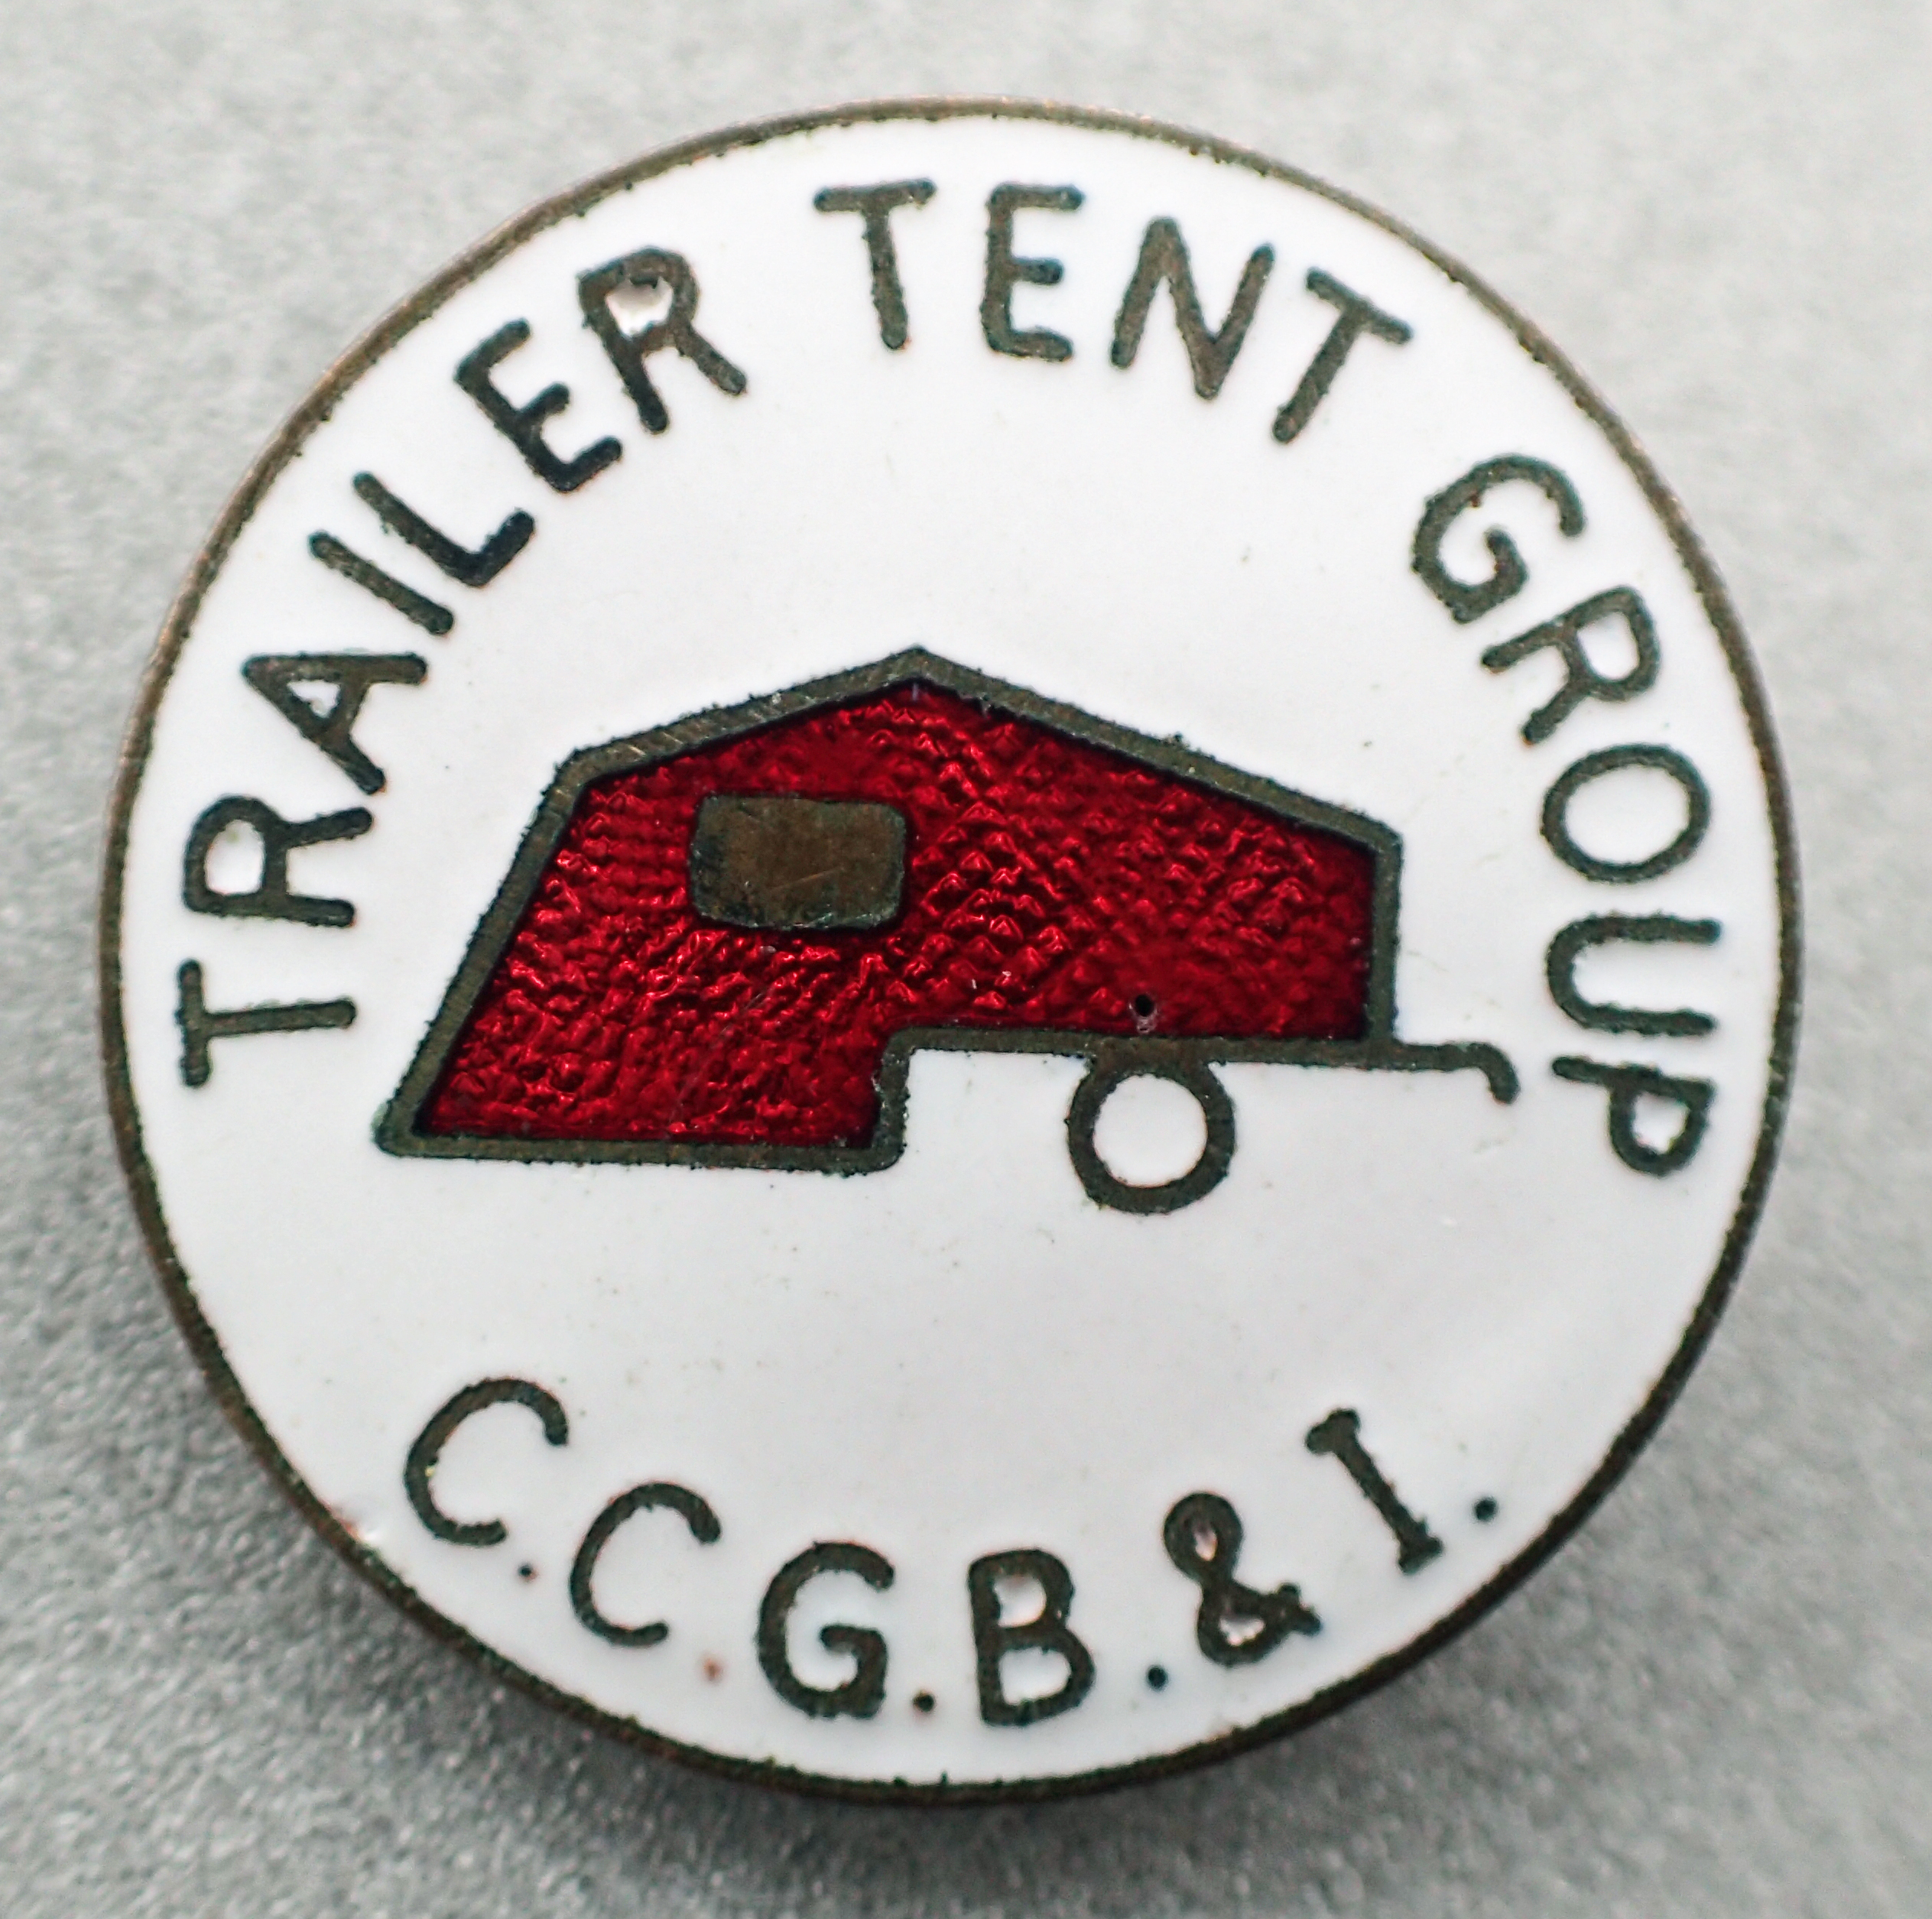 Enamel badge for members of the Trailer Tent Group- a sub-sction of the Camping and Caravanning Club of Great Britain & Ireland